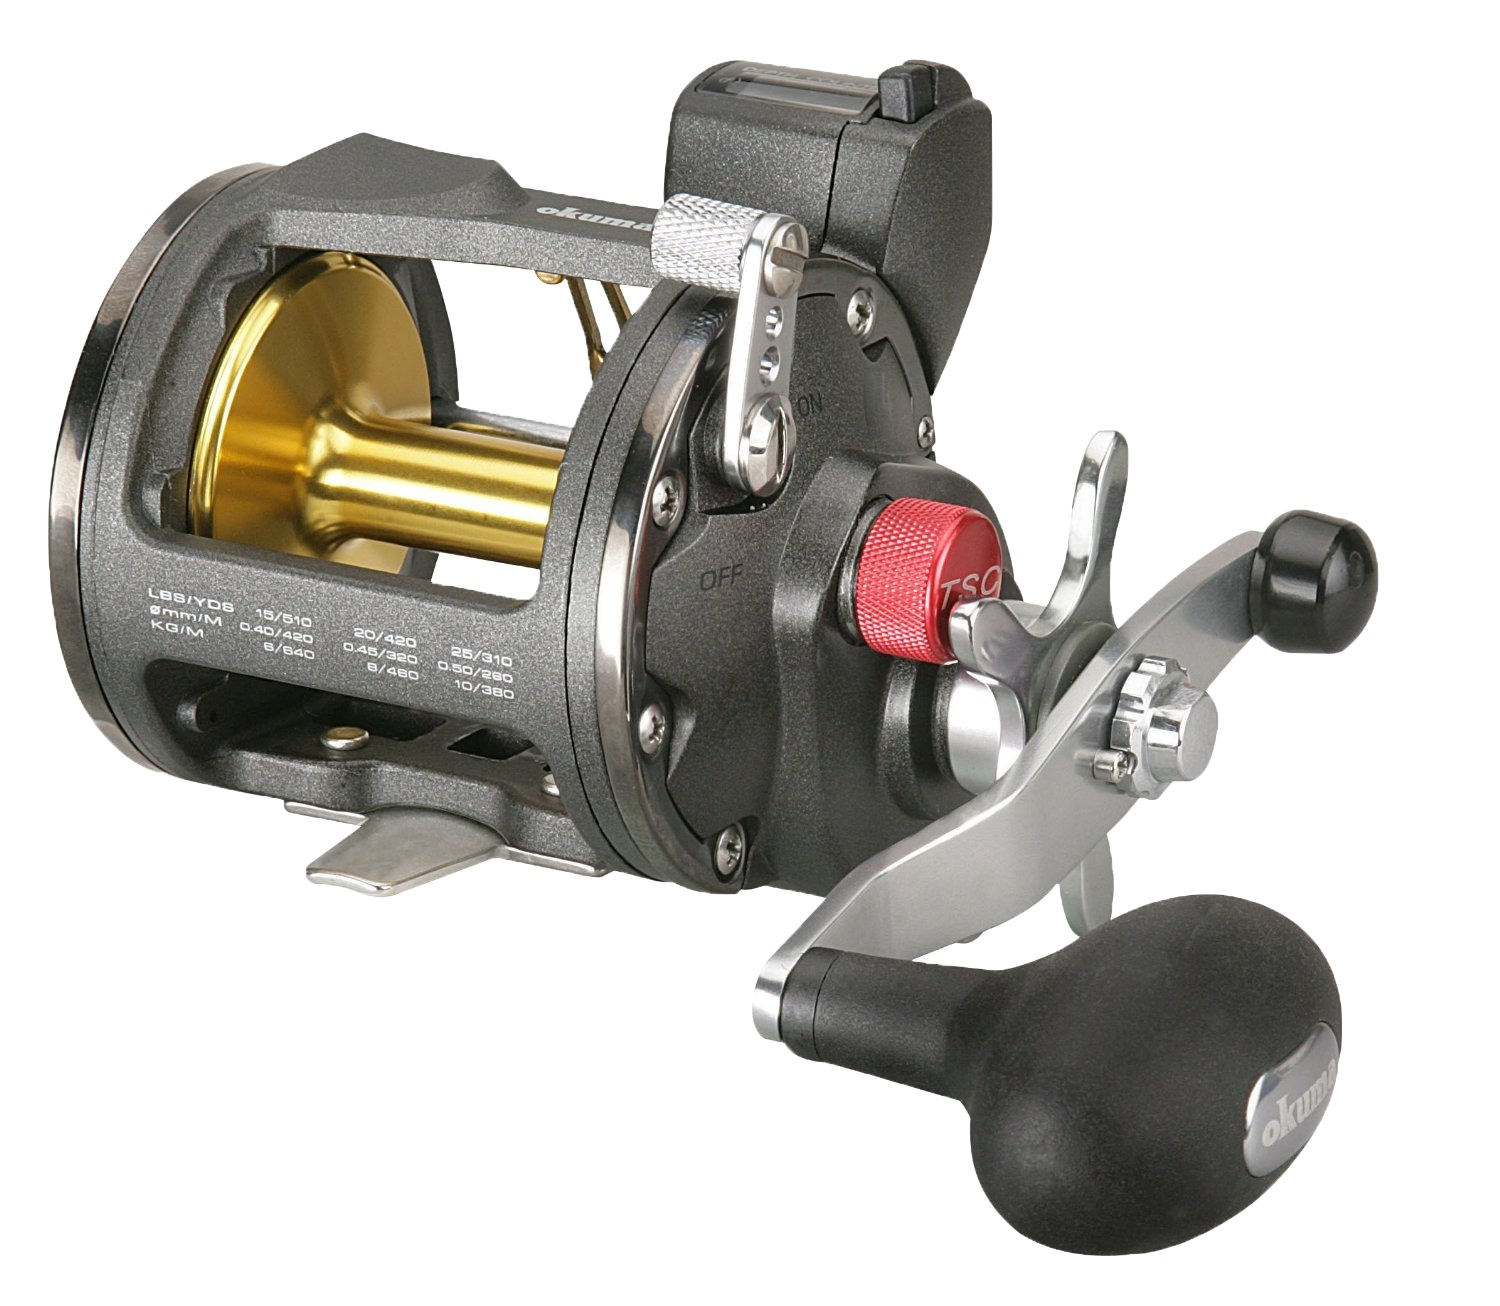 Okuma Clarion Line Counter Clr Multiplier Reel Glasgow